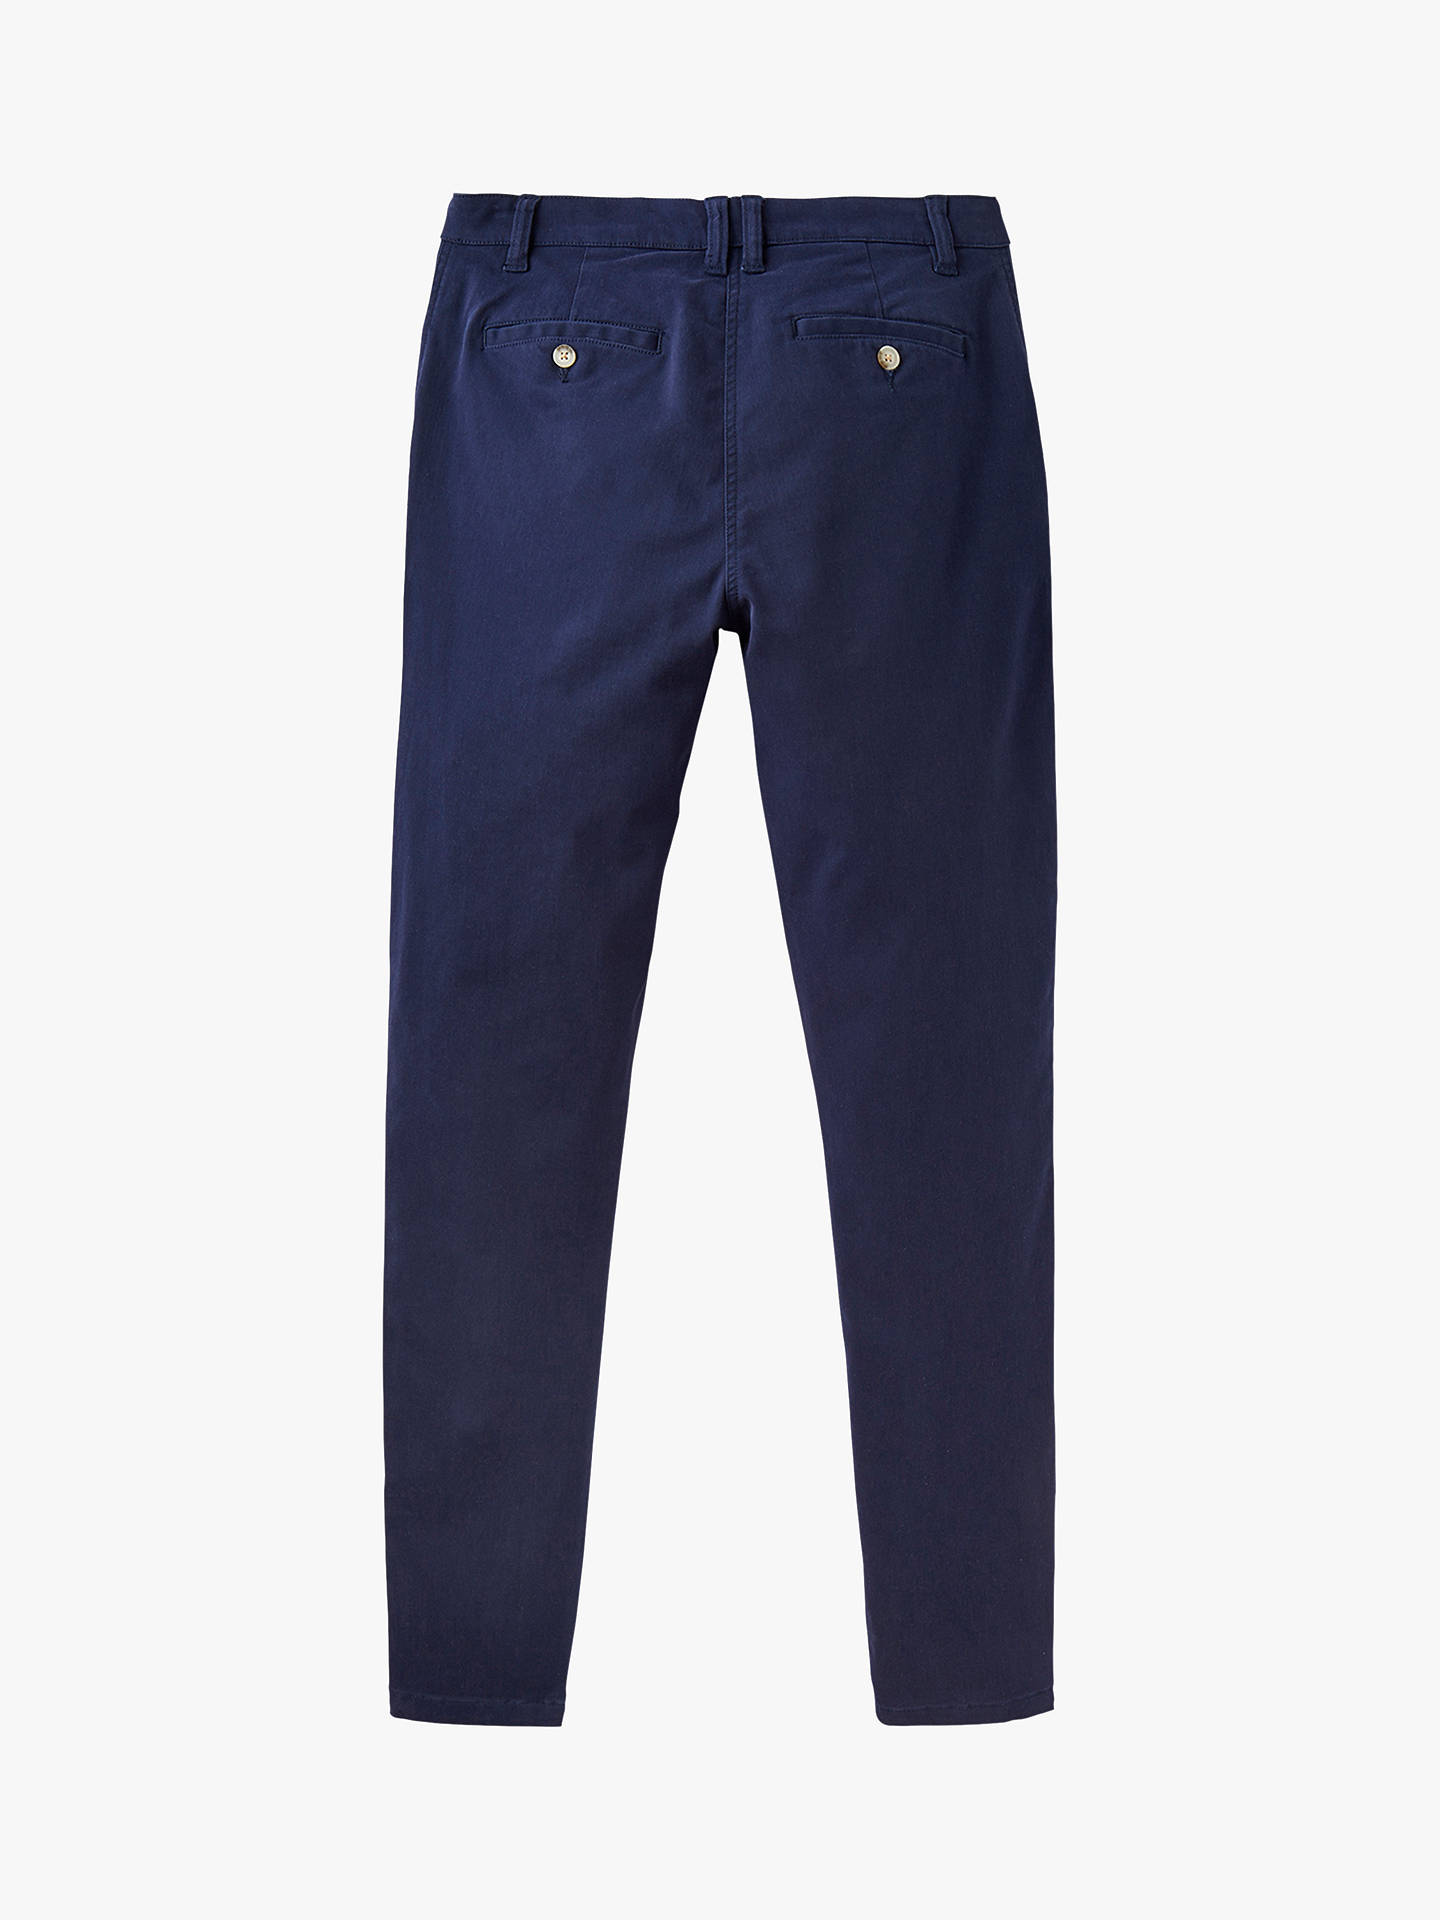 BuyJoules Hesford Chino Trousers, French Navy, 6 Online at johnlewis.com